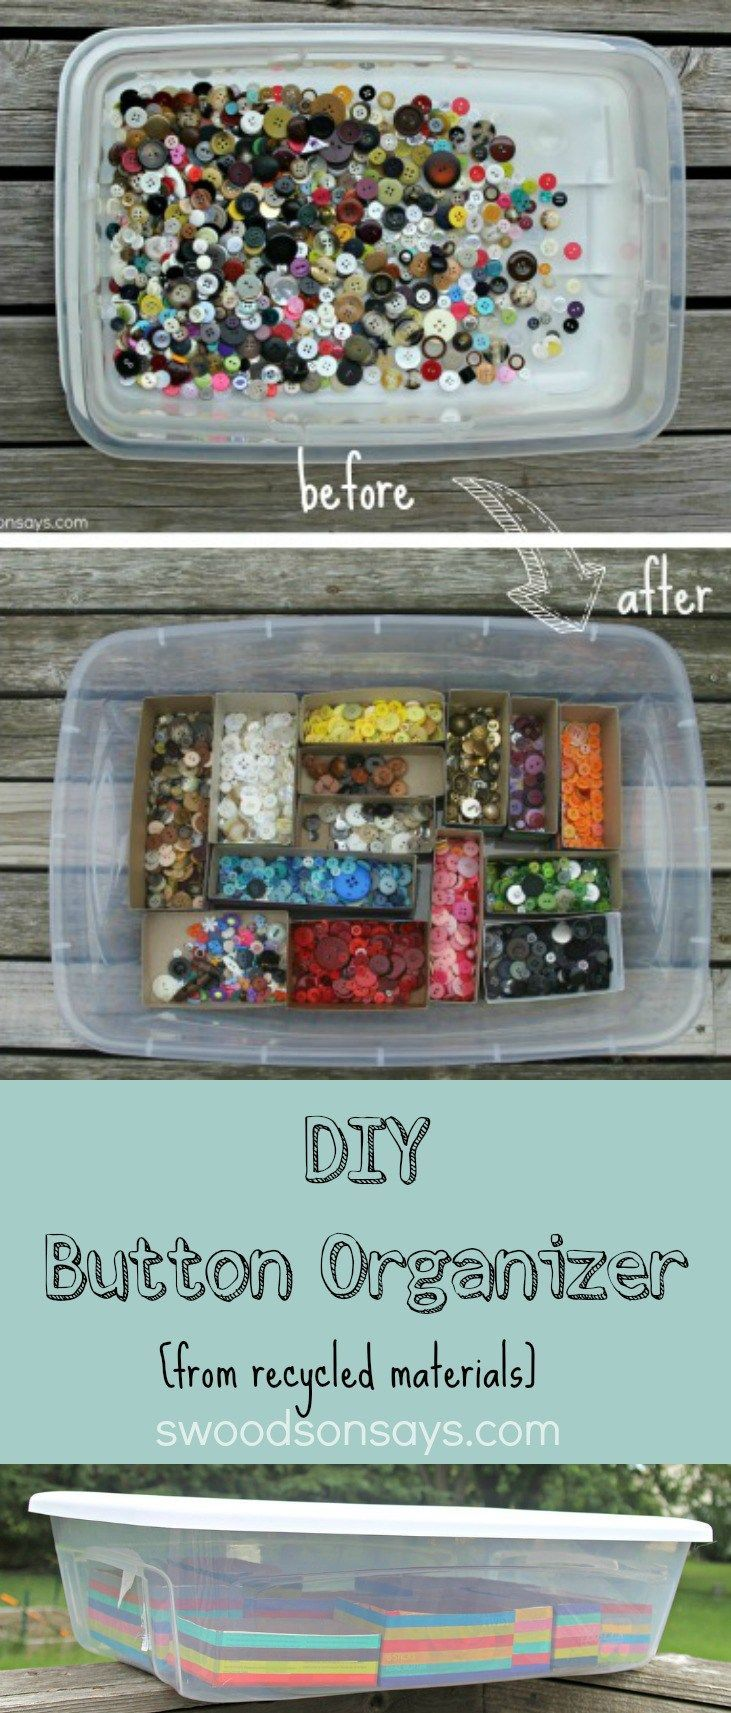 DIY Button Upcycled Recycled Organizer - this is an easy way to organize buttons! No fancy tools, just takes a little time and patience; made from recycled materials.